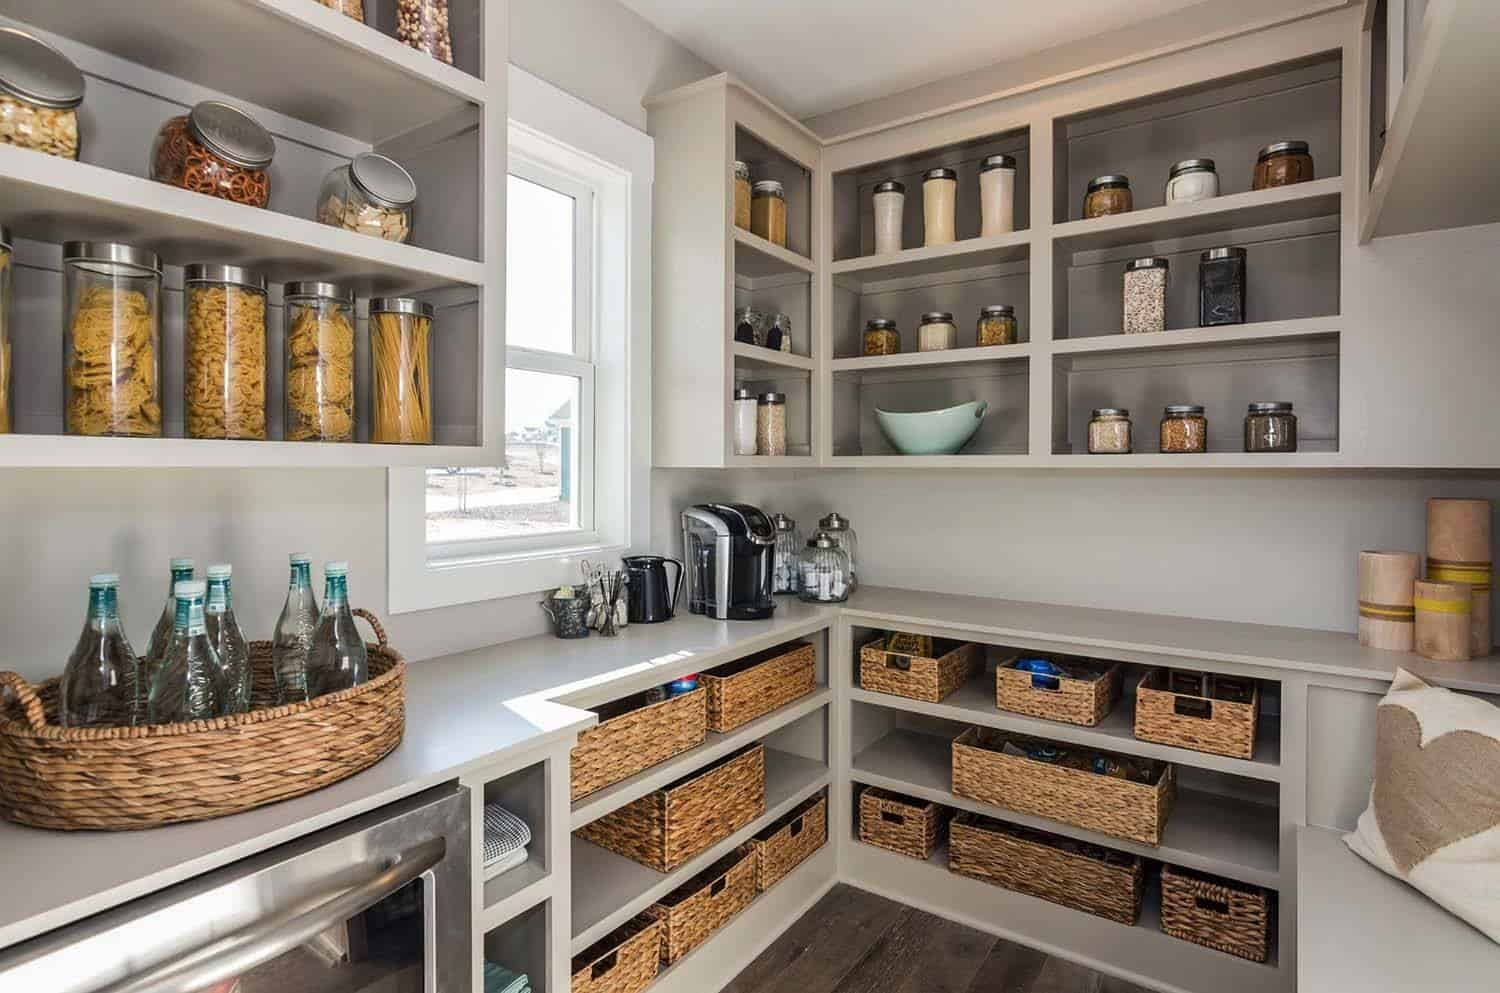 35 clever ideas to help organize your kitchen pantry 2099